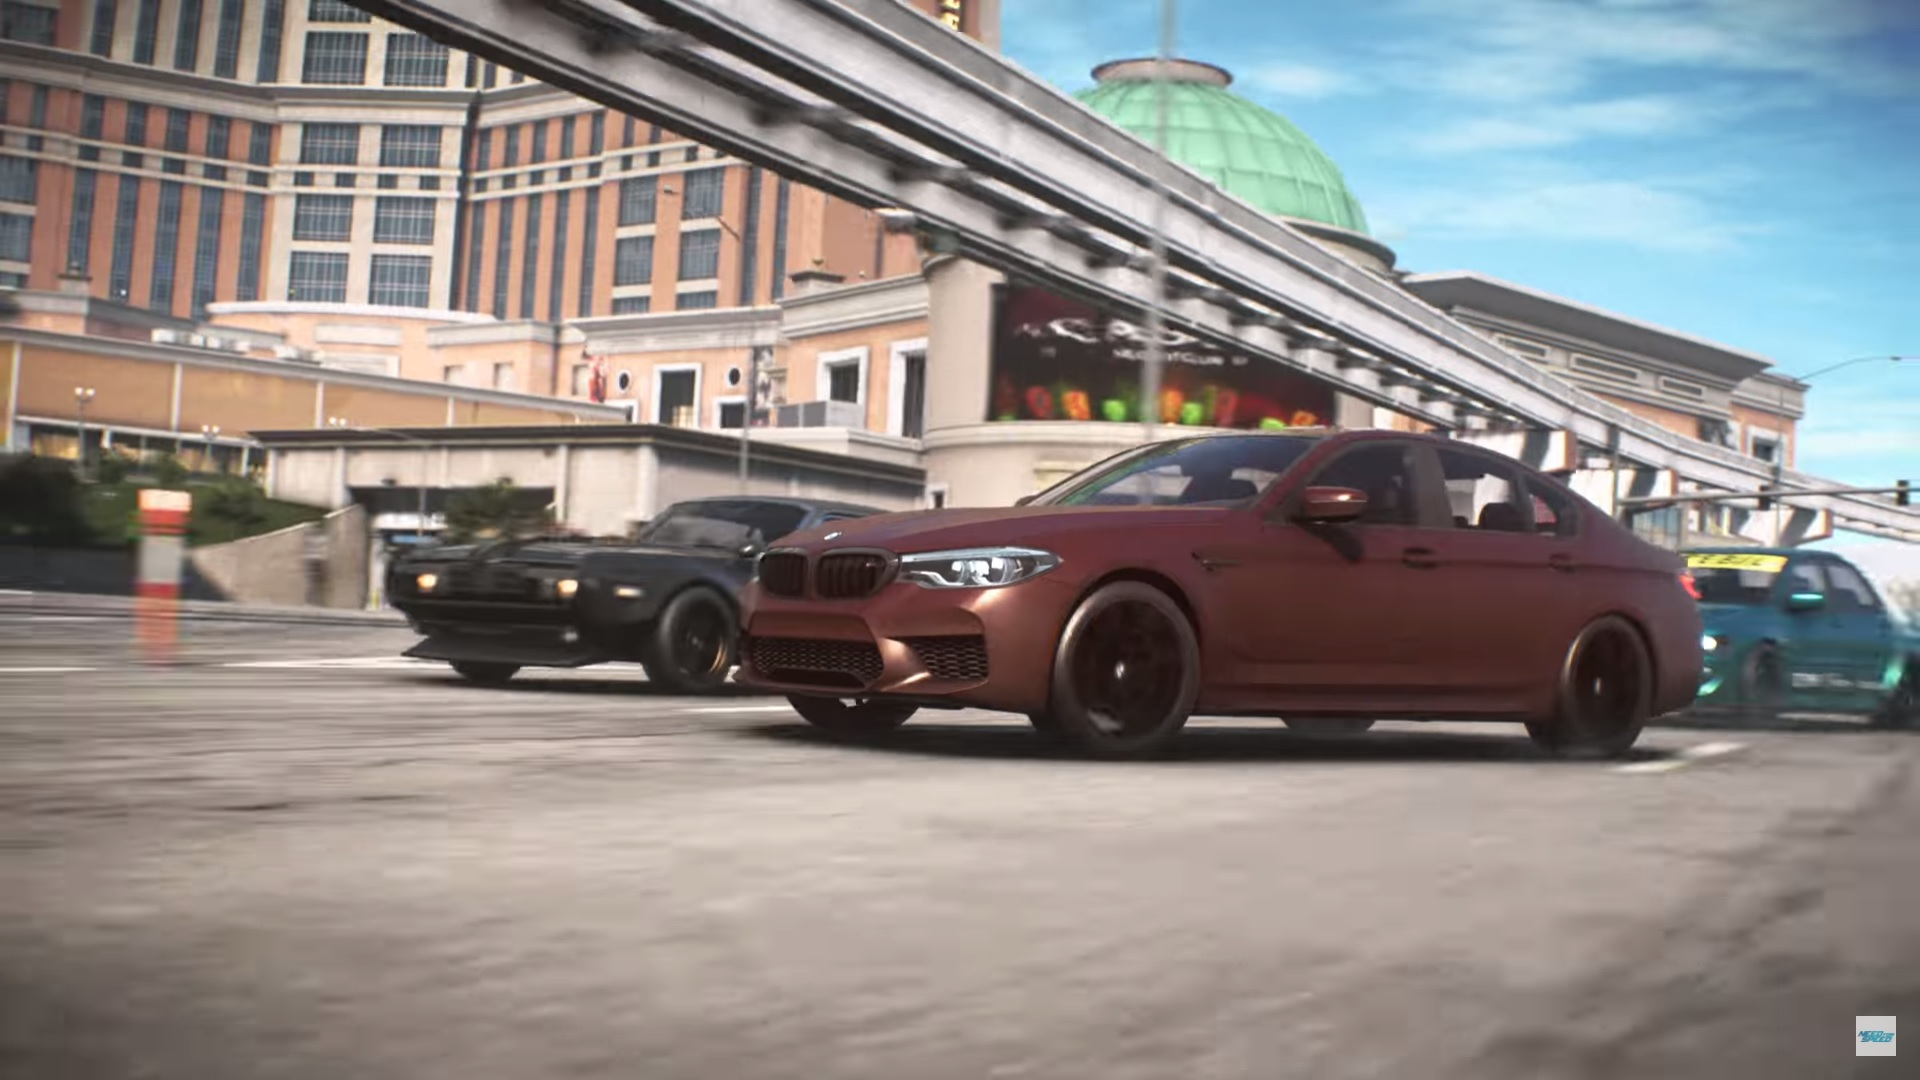 un nouveau trailer de need for speed payback avec la bmw m5 de 2018 jvfrance. Black Bedroom Furniture Sets. Home Design Ideas